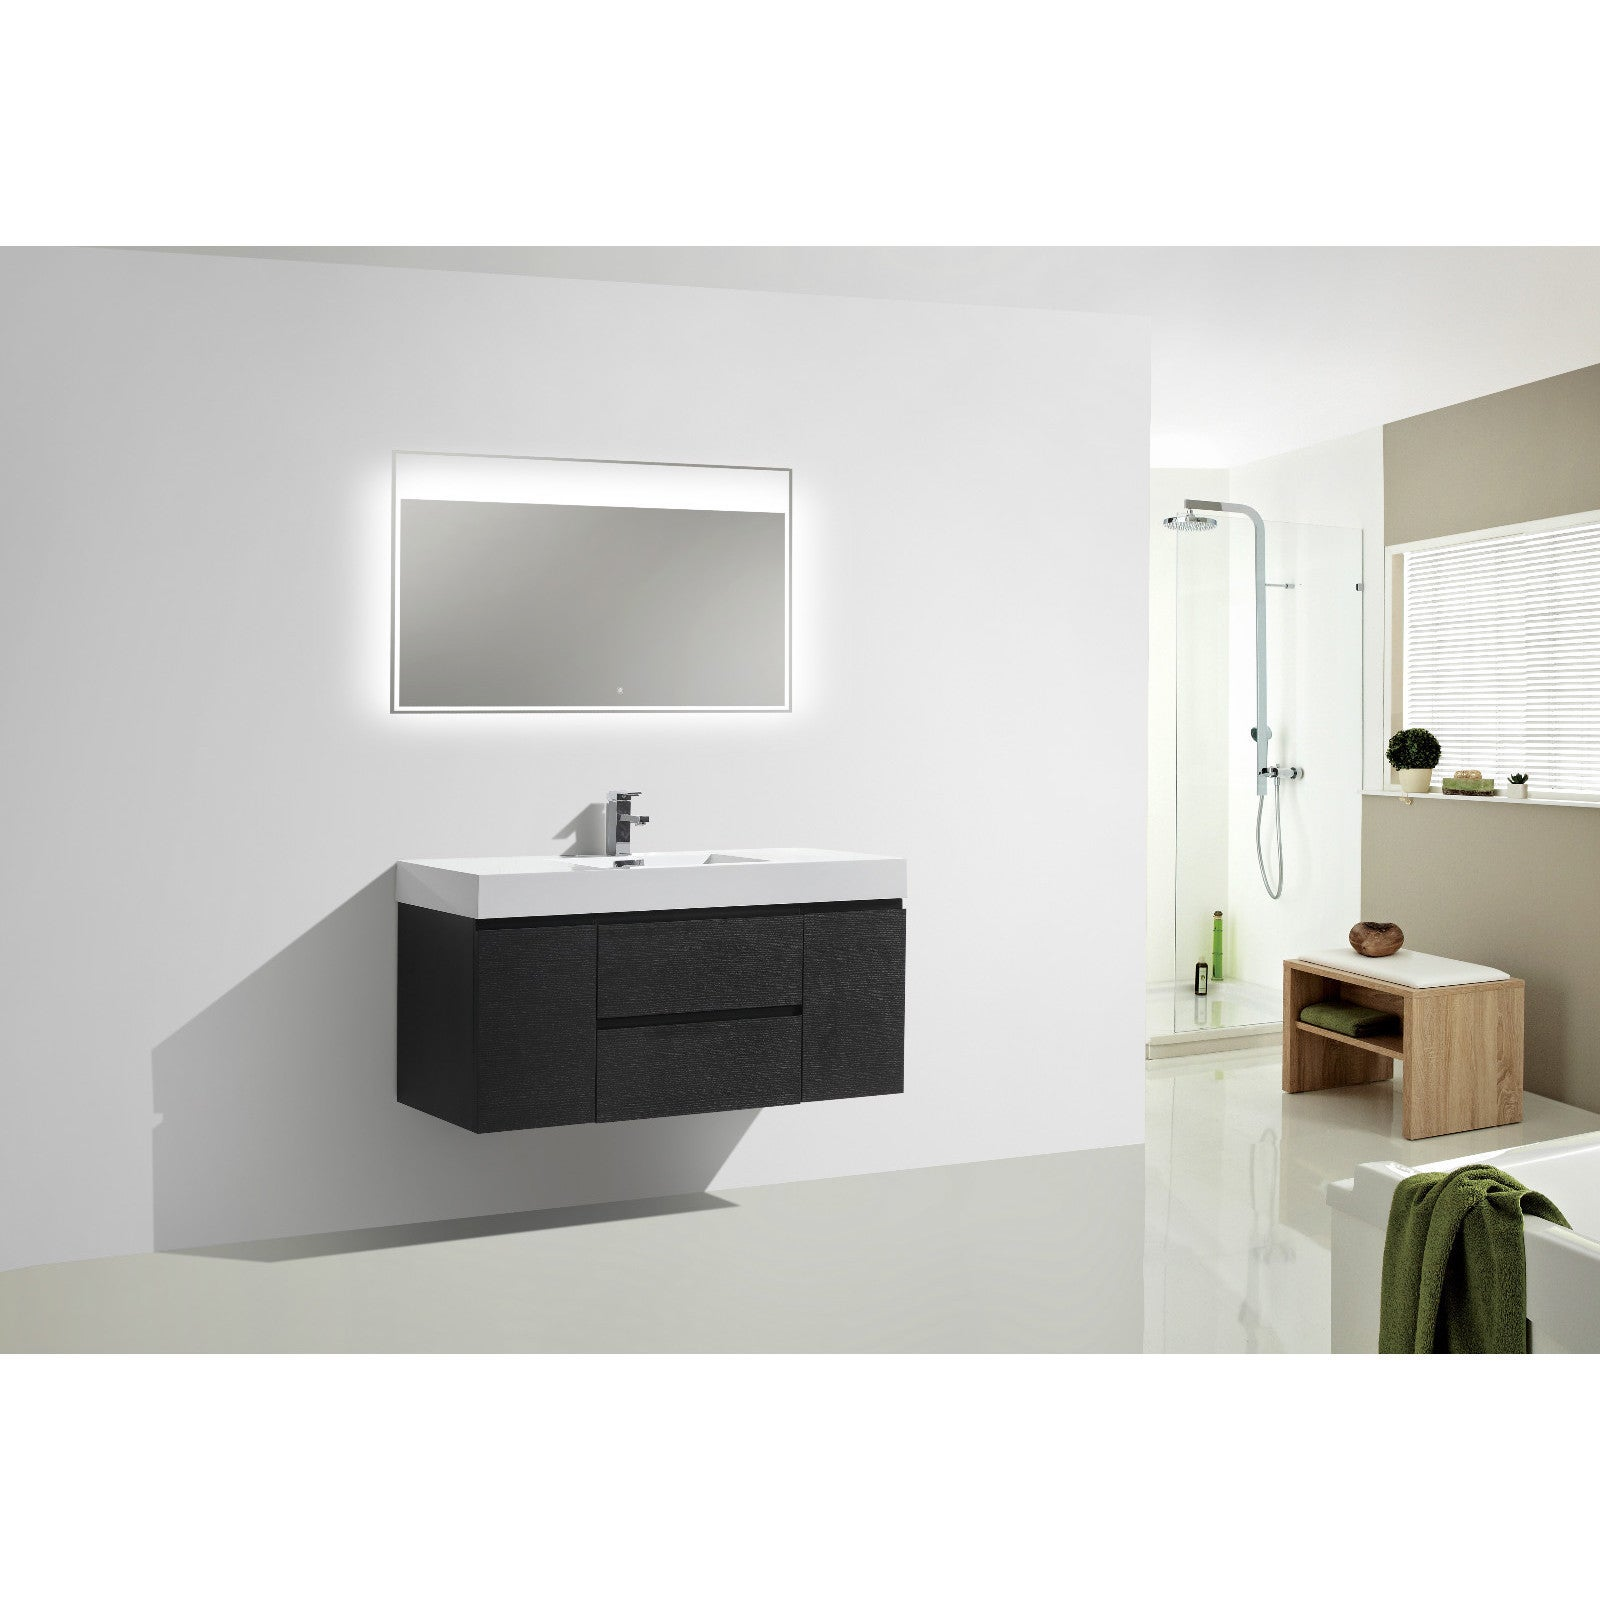 Moreno Mof 48 Inch Wall Mounted Modern Bathroom Vanity With Reinforced